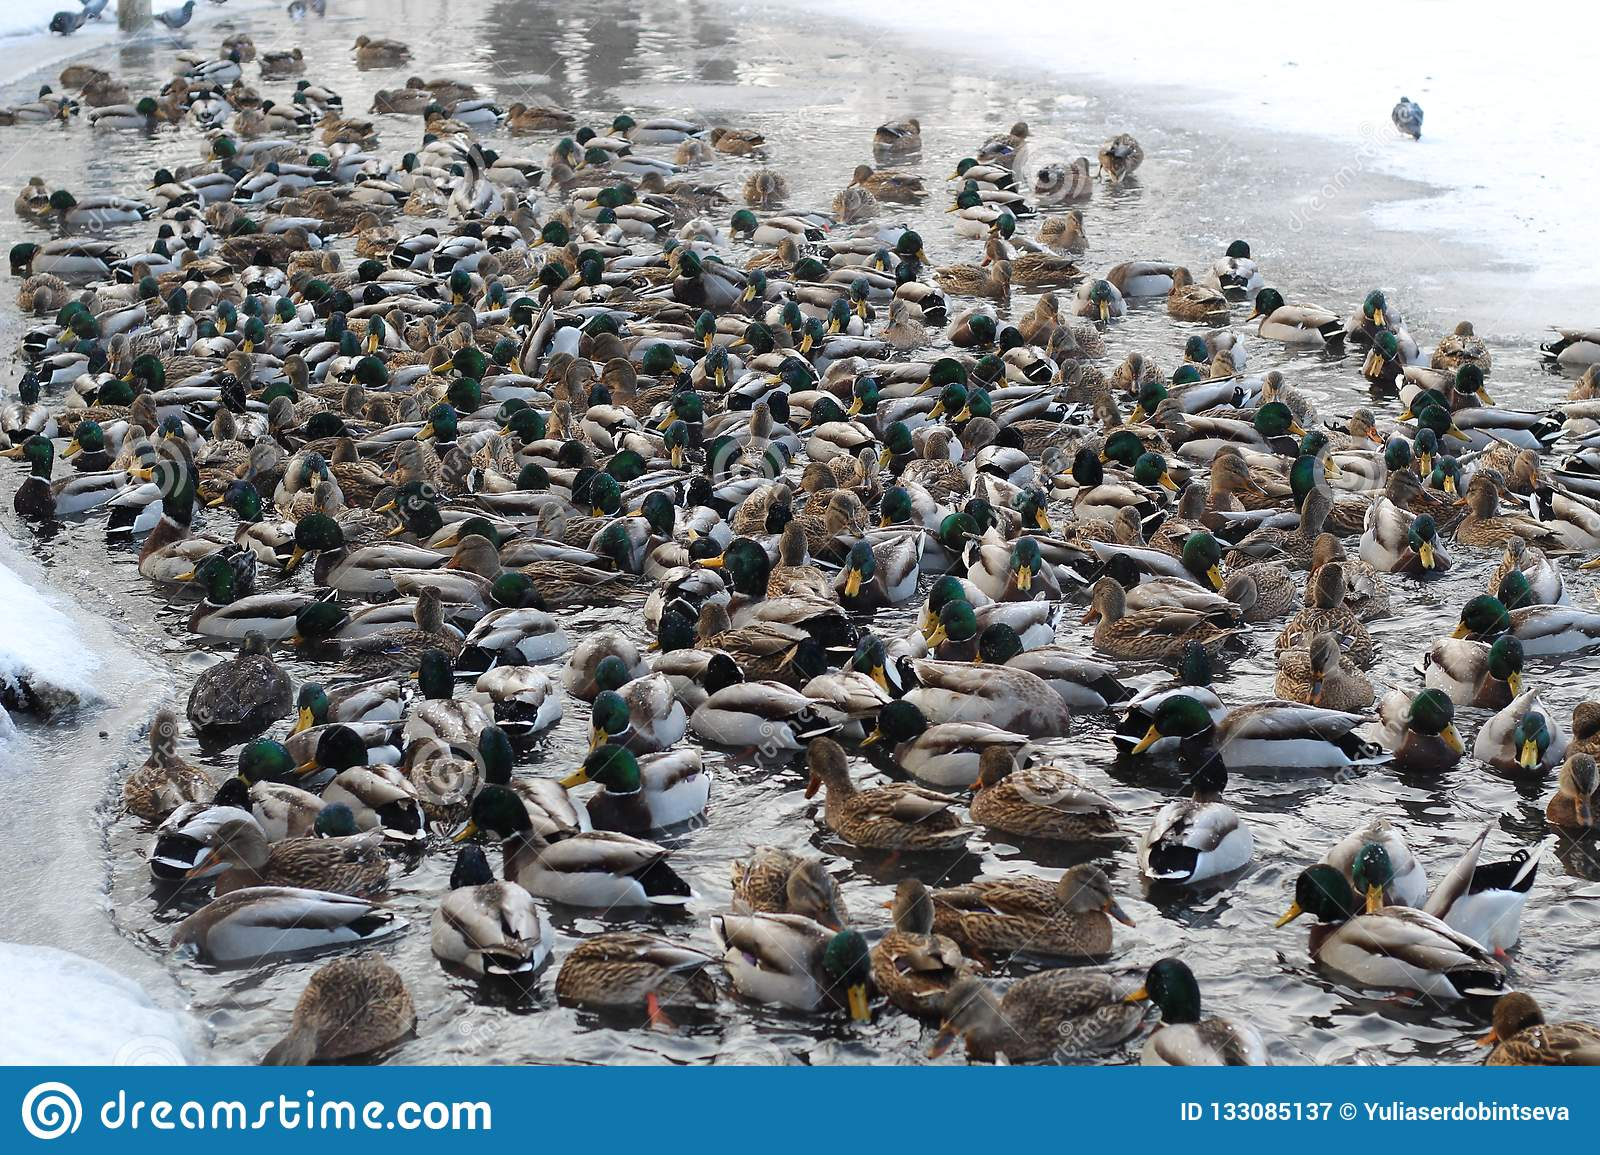 Extremely many ducks swim in the freezing pond in search of food.